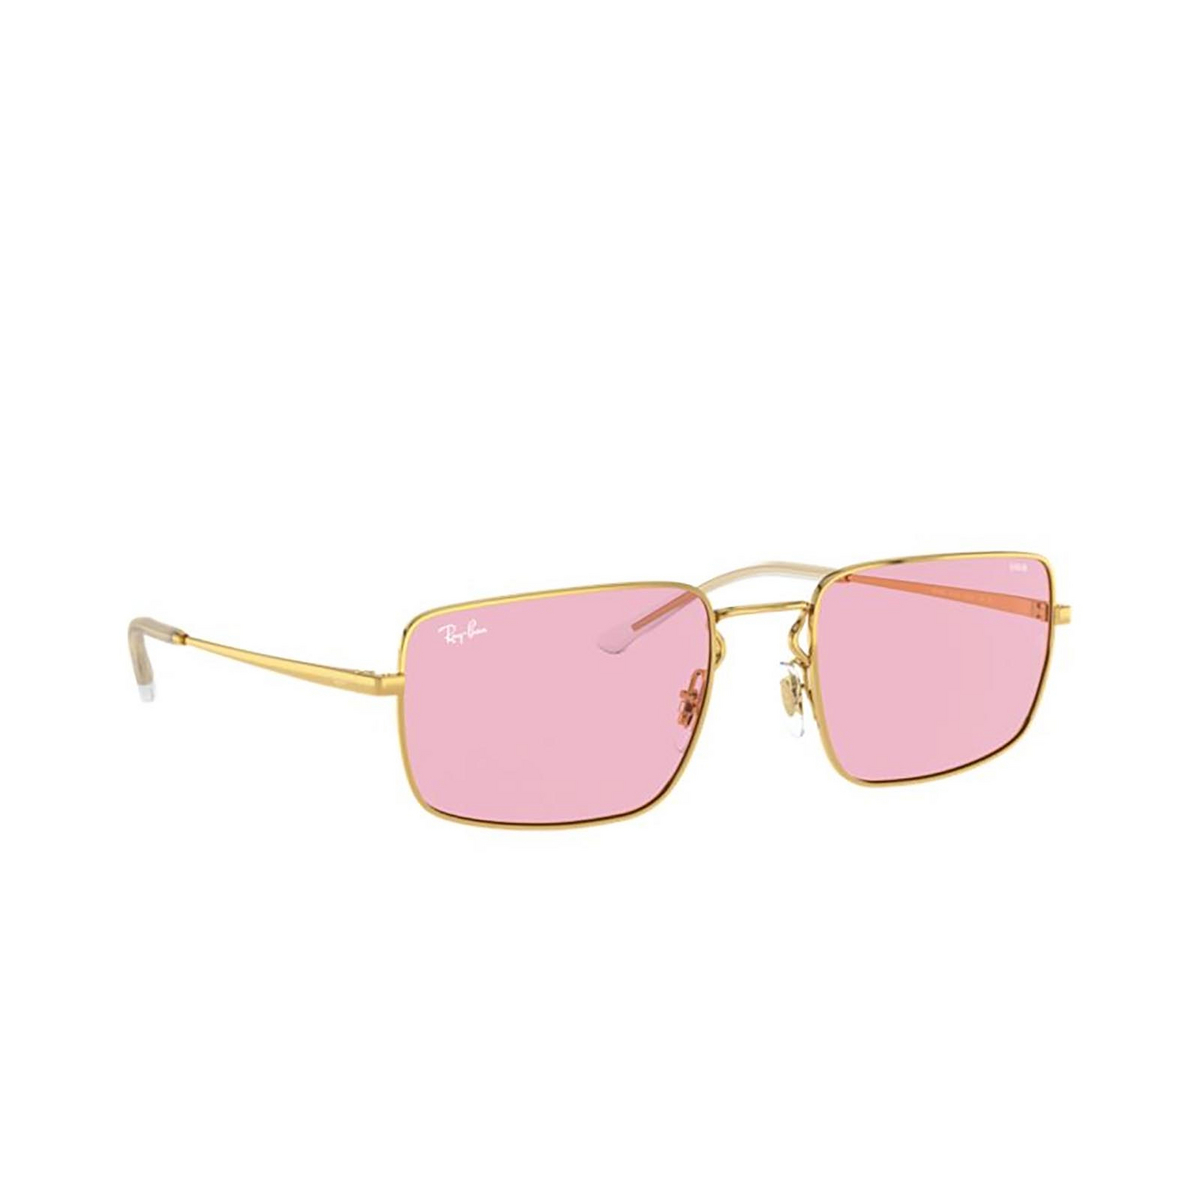 Ray-Ban® : RB3669 color Arista 001/Q3.